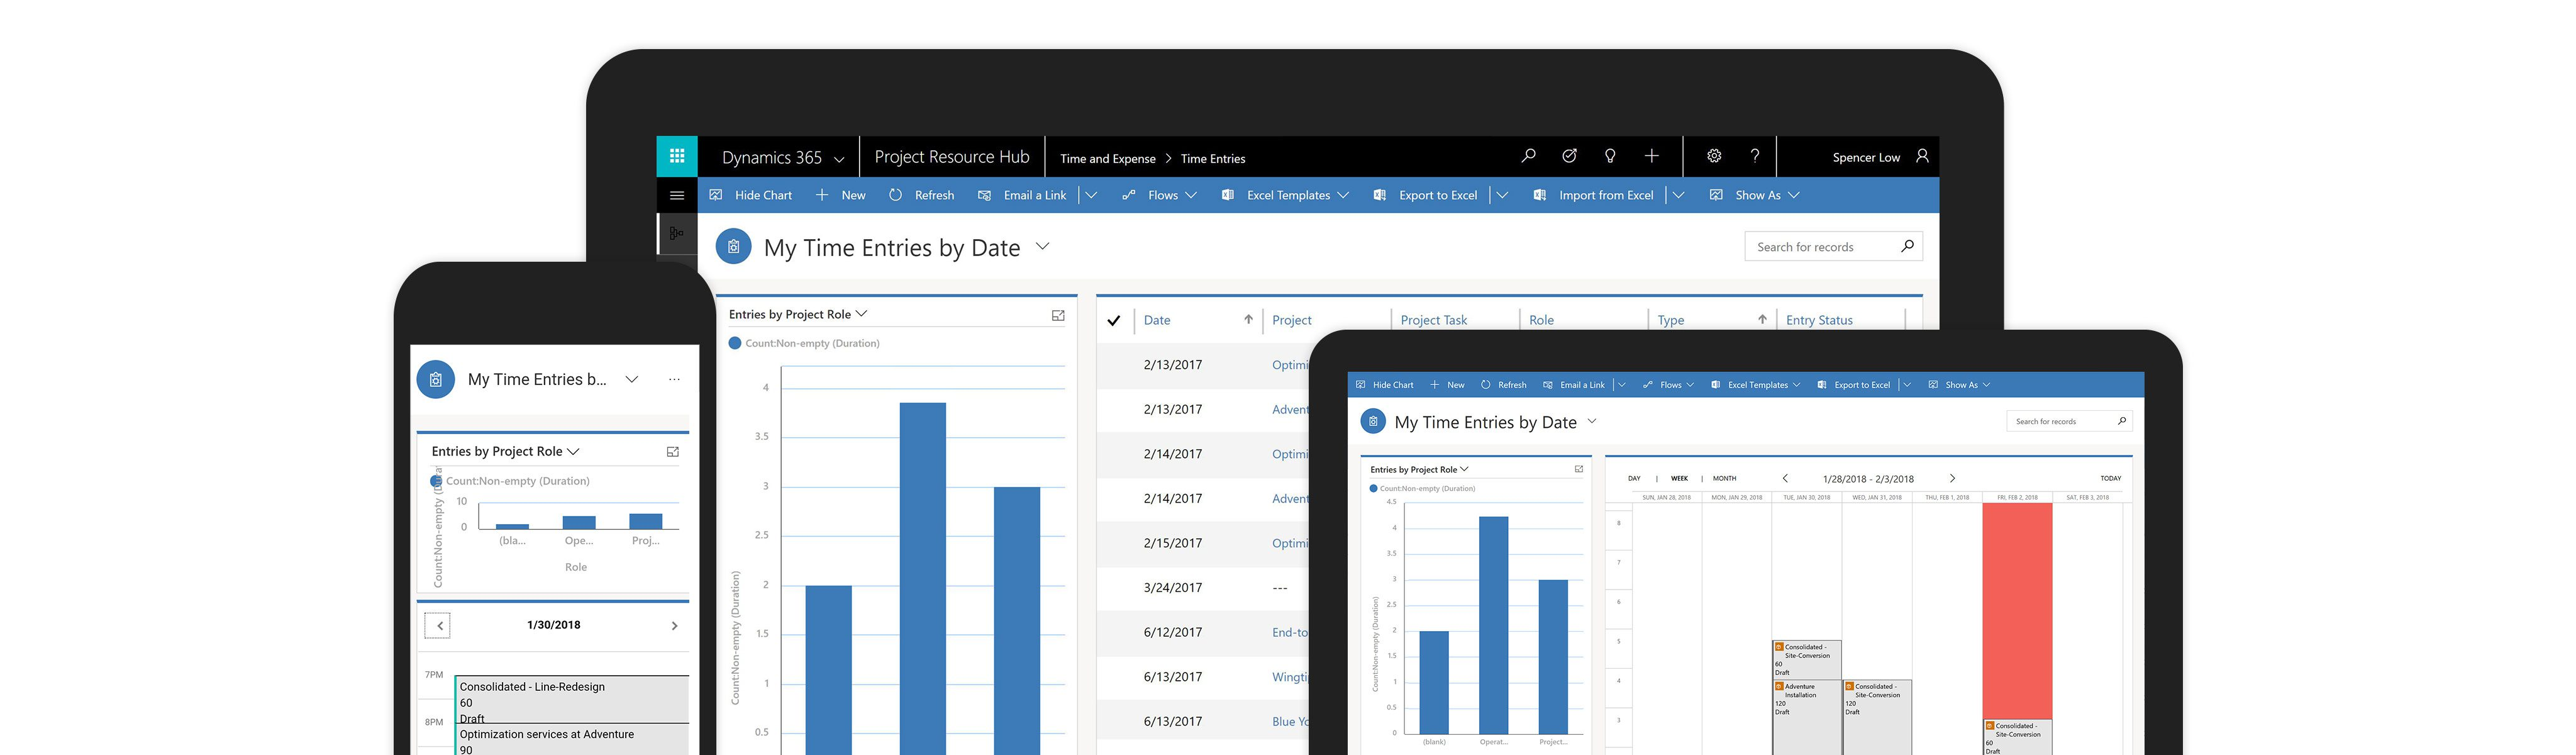 Dynamics 365 Projects Qbs Group